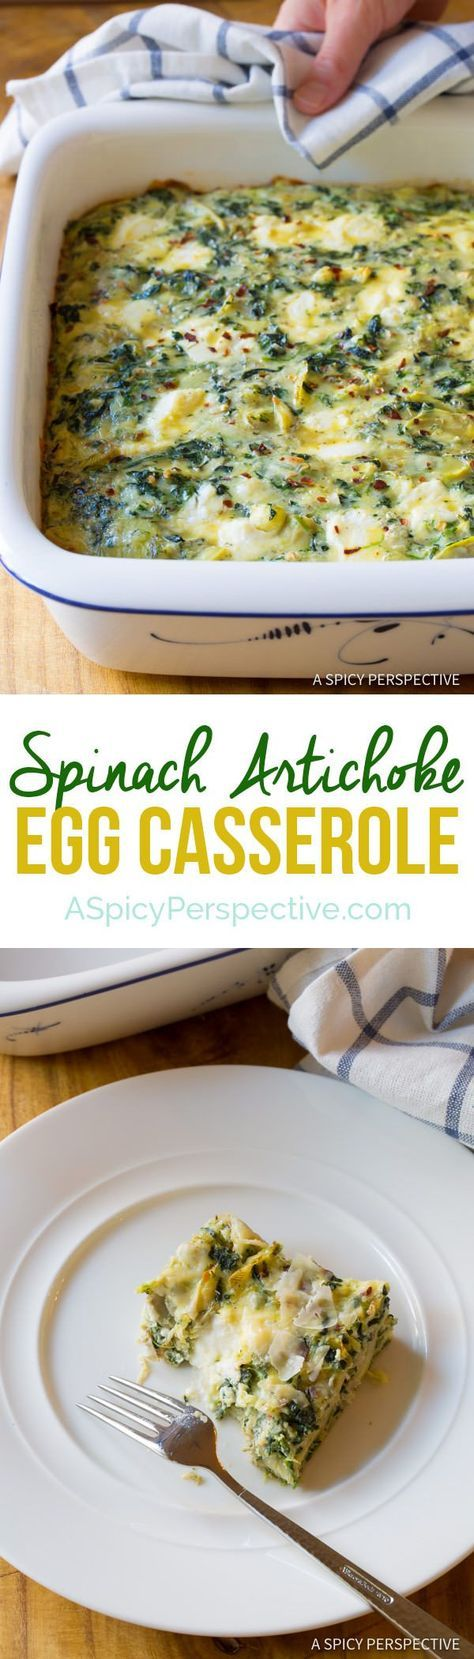 Zesty Spinach Artichoke Egg Casserole (Low Carb, Vegetarian & Gluten Free!) | A Spicy Perspective